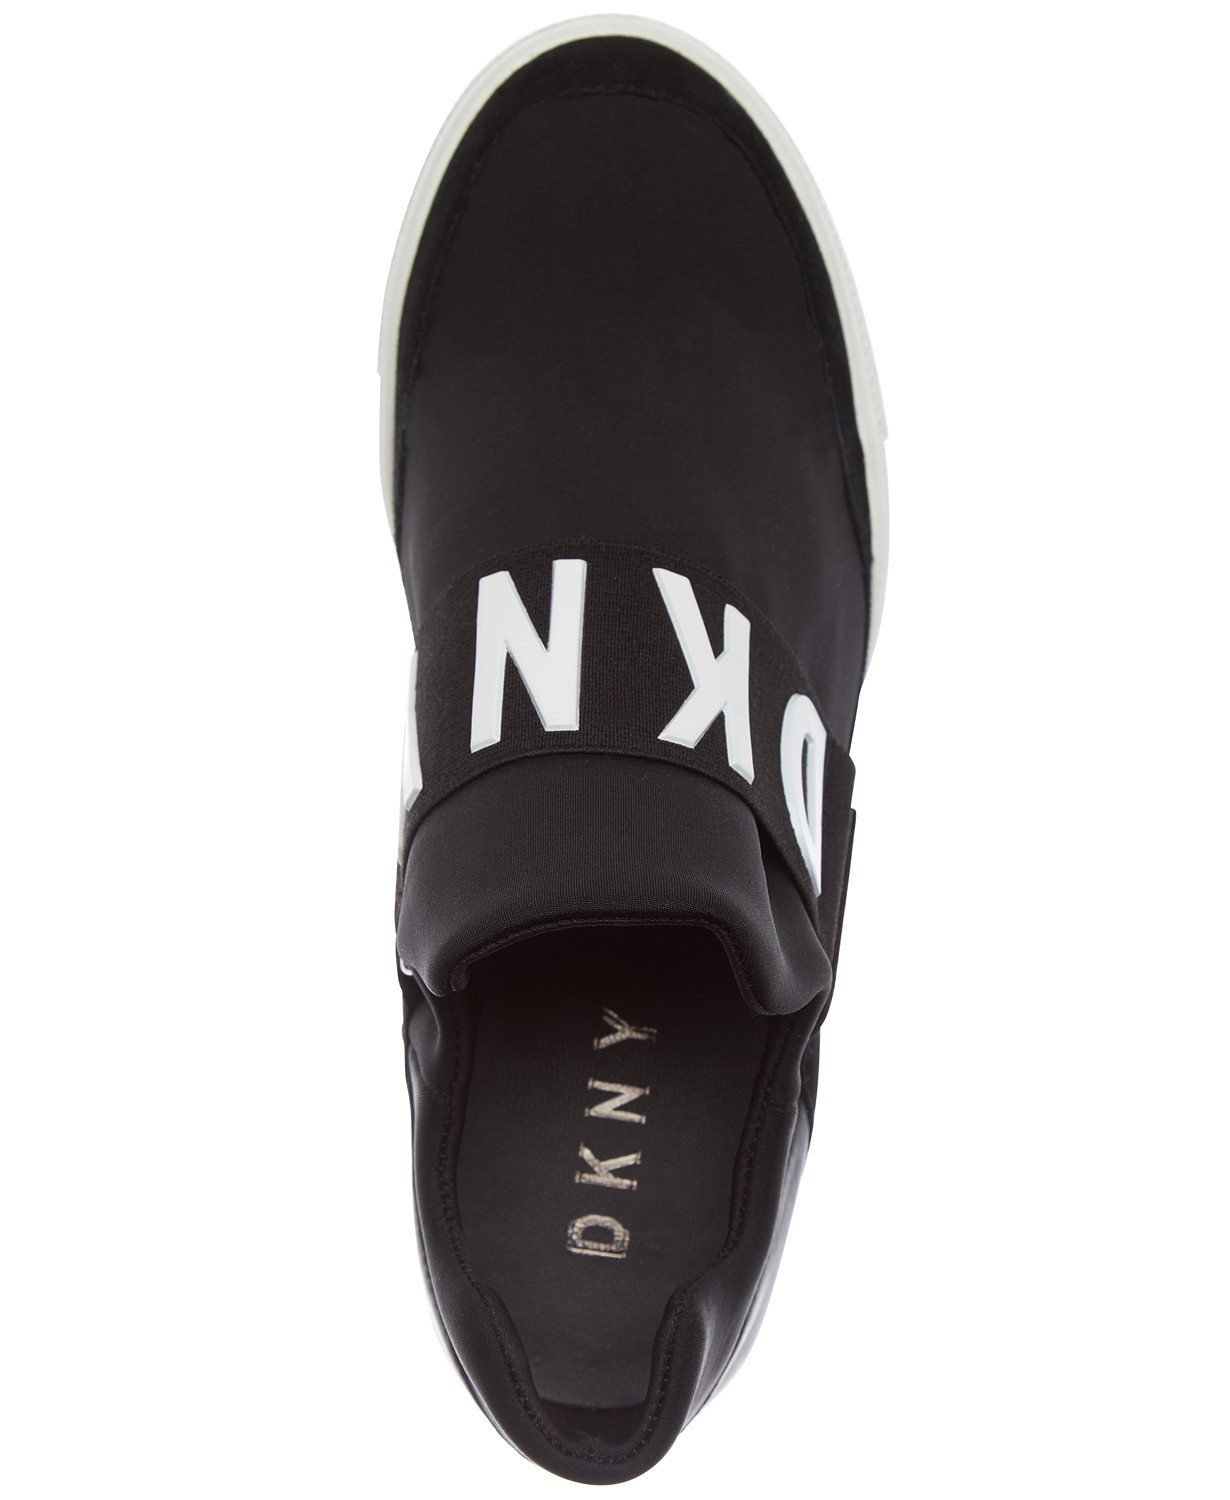 shop dkny shoes